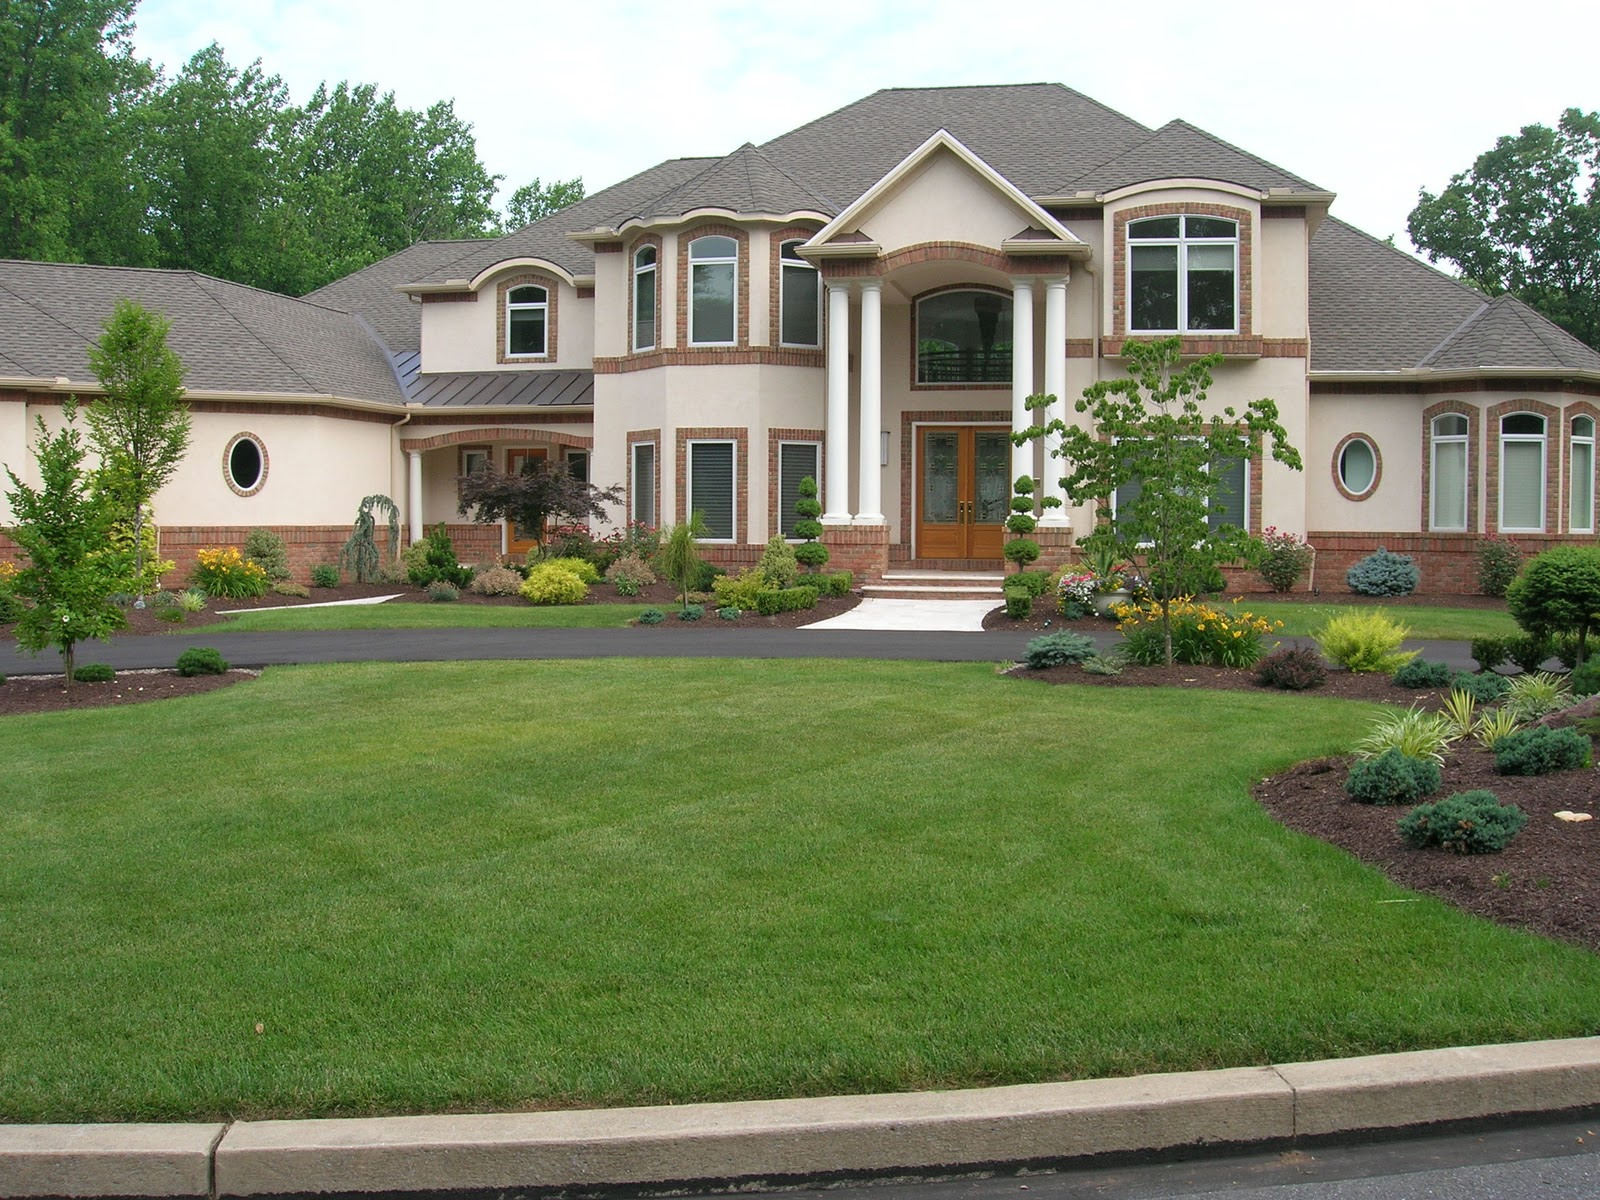 Stunning Home Front Yard Landscaping Ideas 1600 x 1200 · 551 kB · jpeg